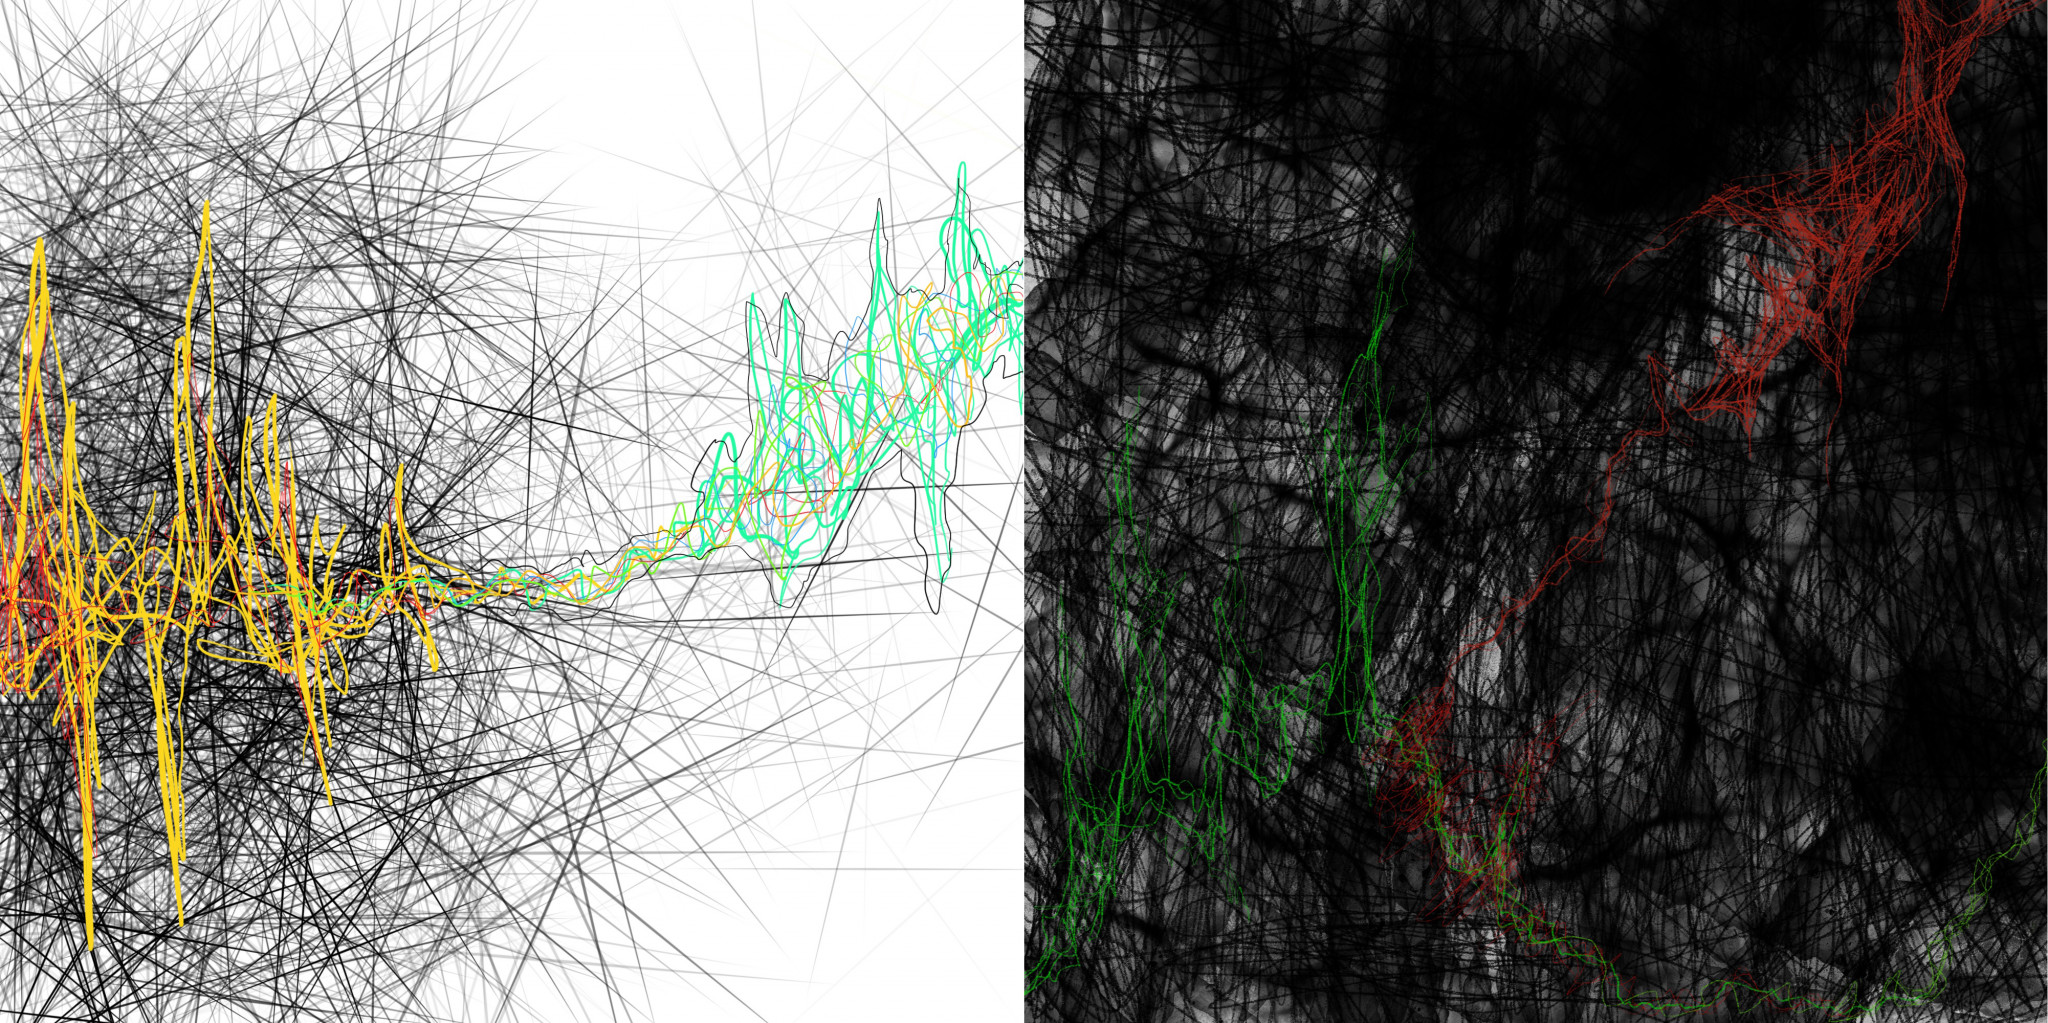 Thin black hashes on a white background underlay a jagged tangle of lines extending from left to right, yellow and red into green; lacy black hashes crisscross a foggy black background, overlaid with a jagged bolt of green and red lines